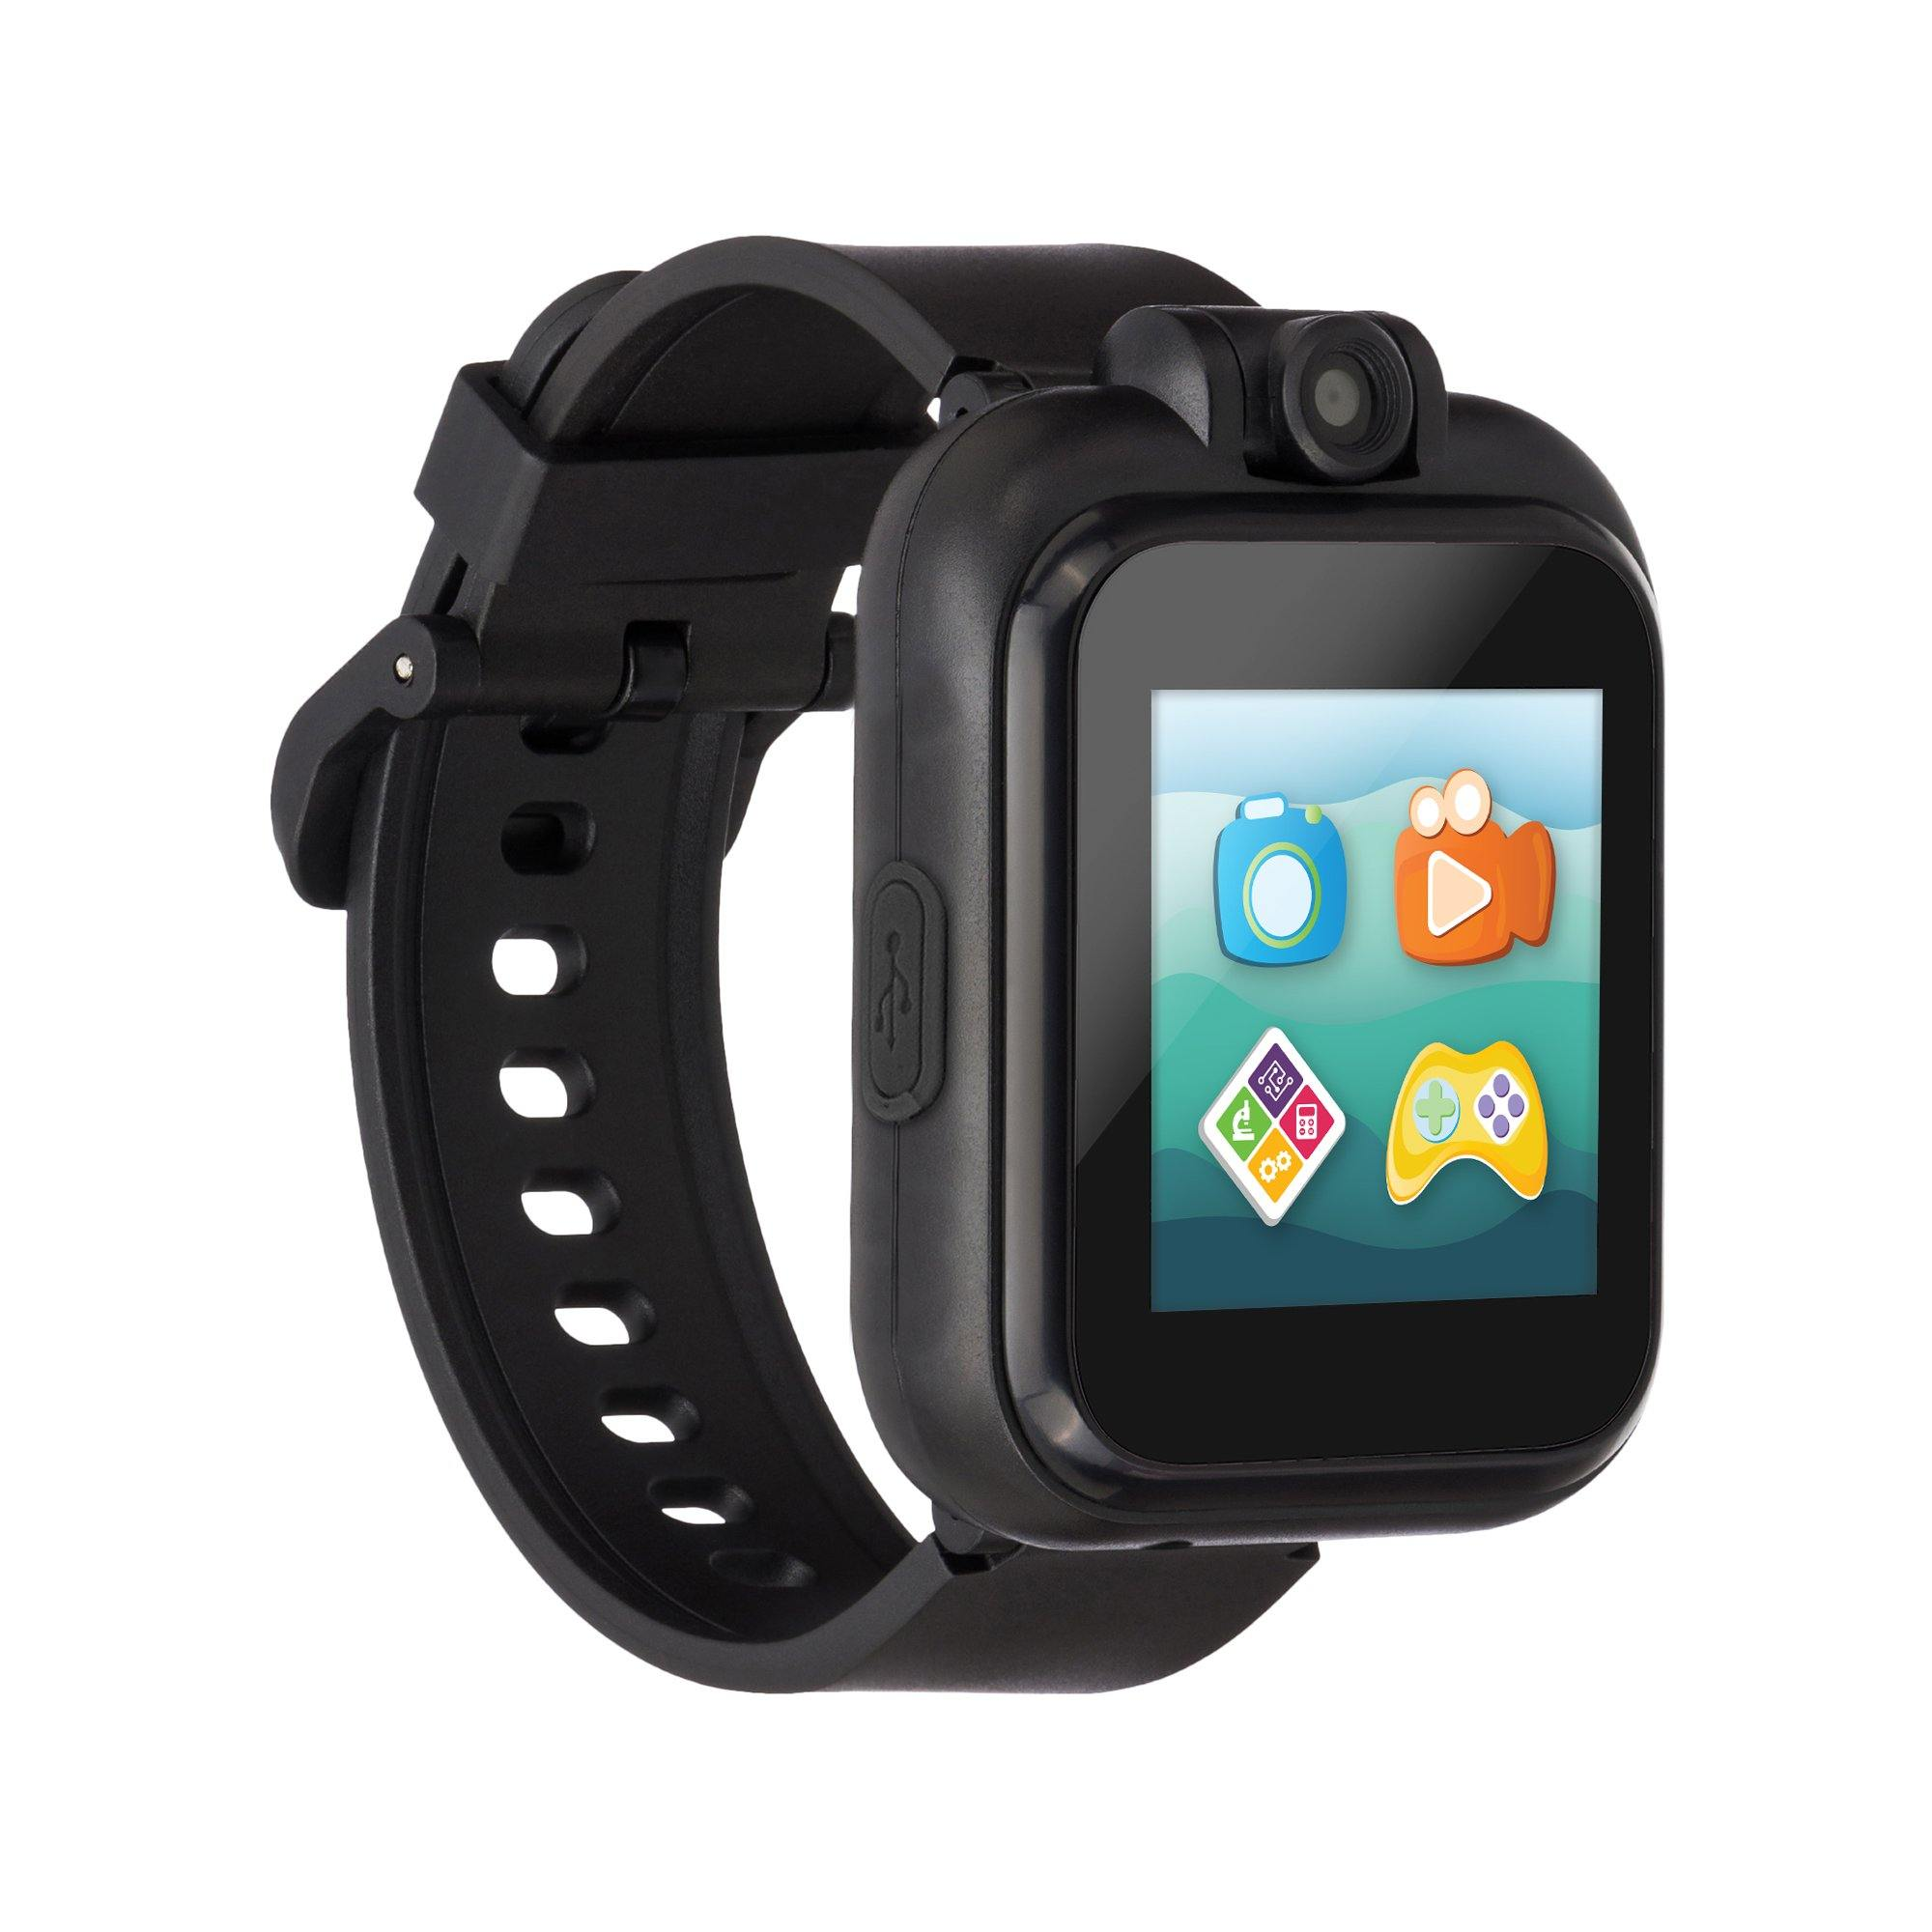 PlayZoom 2 Kids Smartwatch: Solid Black